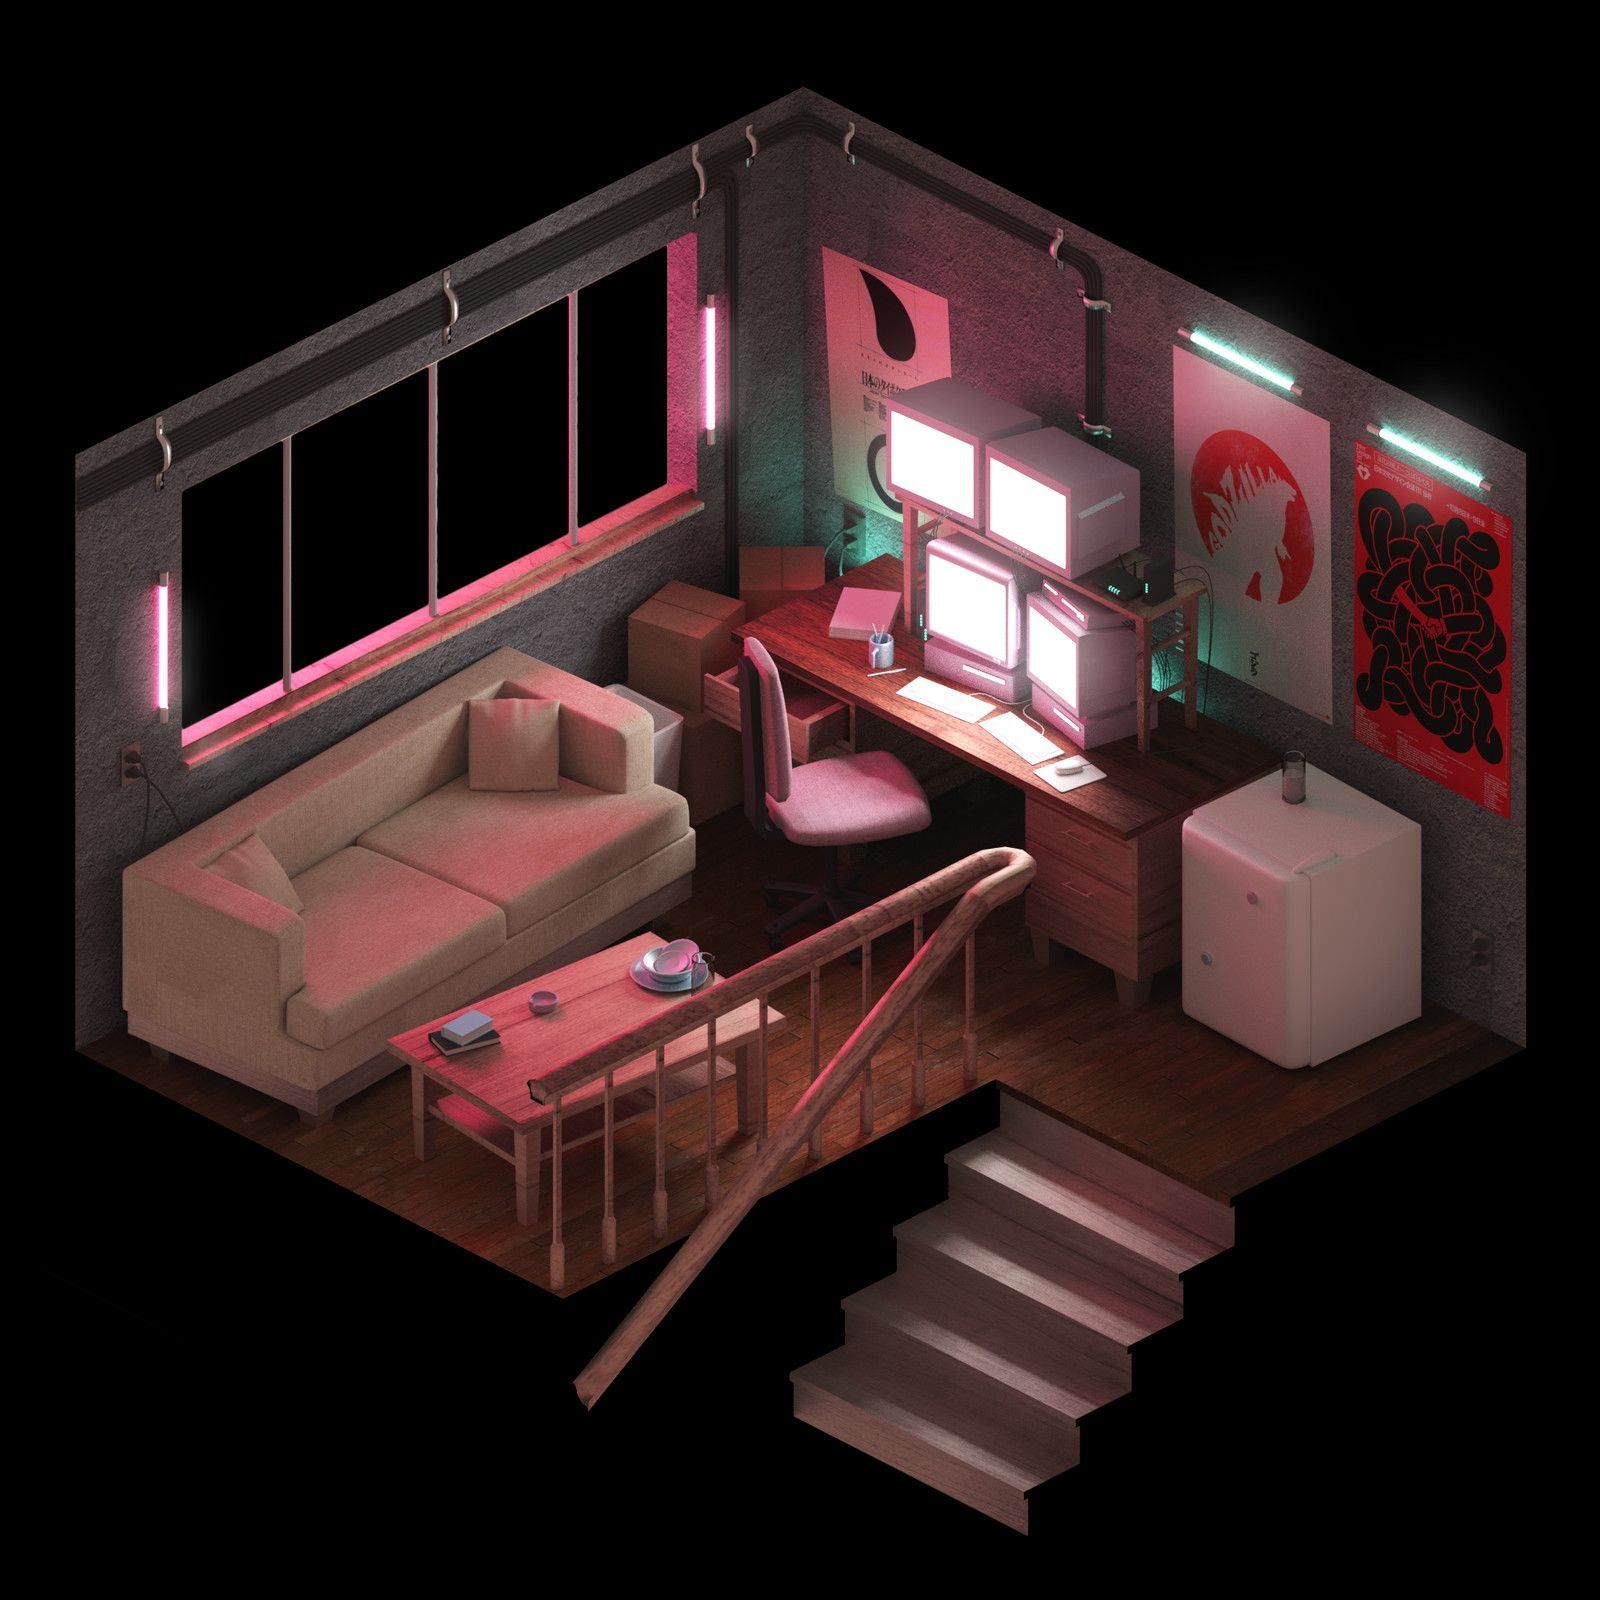 Isometric Environments, Ethan Demarest On